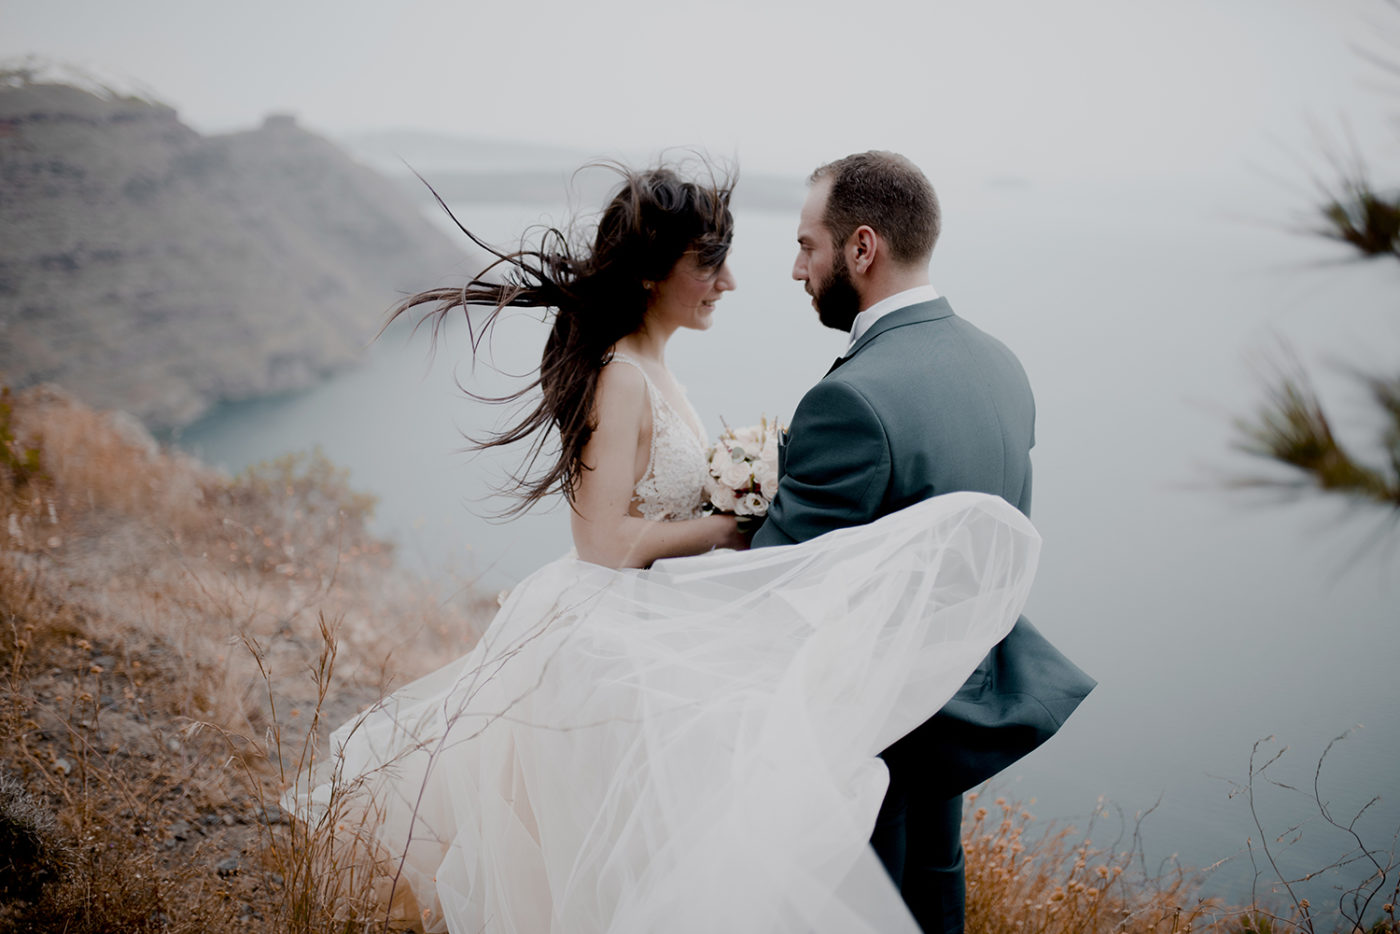 Yiannis-Sissy-Santorini-Wedding-Photography-by-Kirill-Samarits (15)